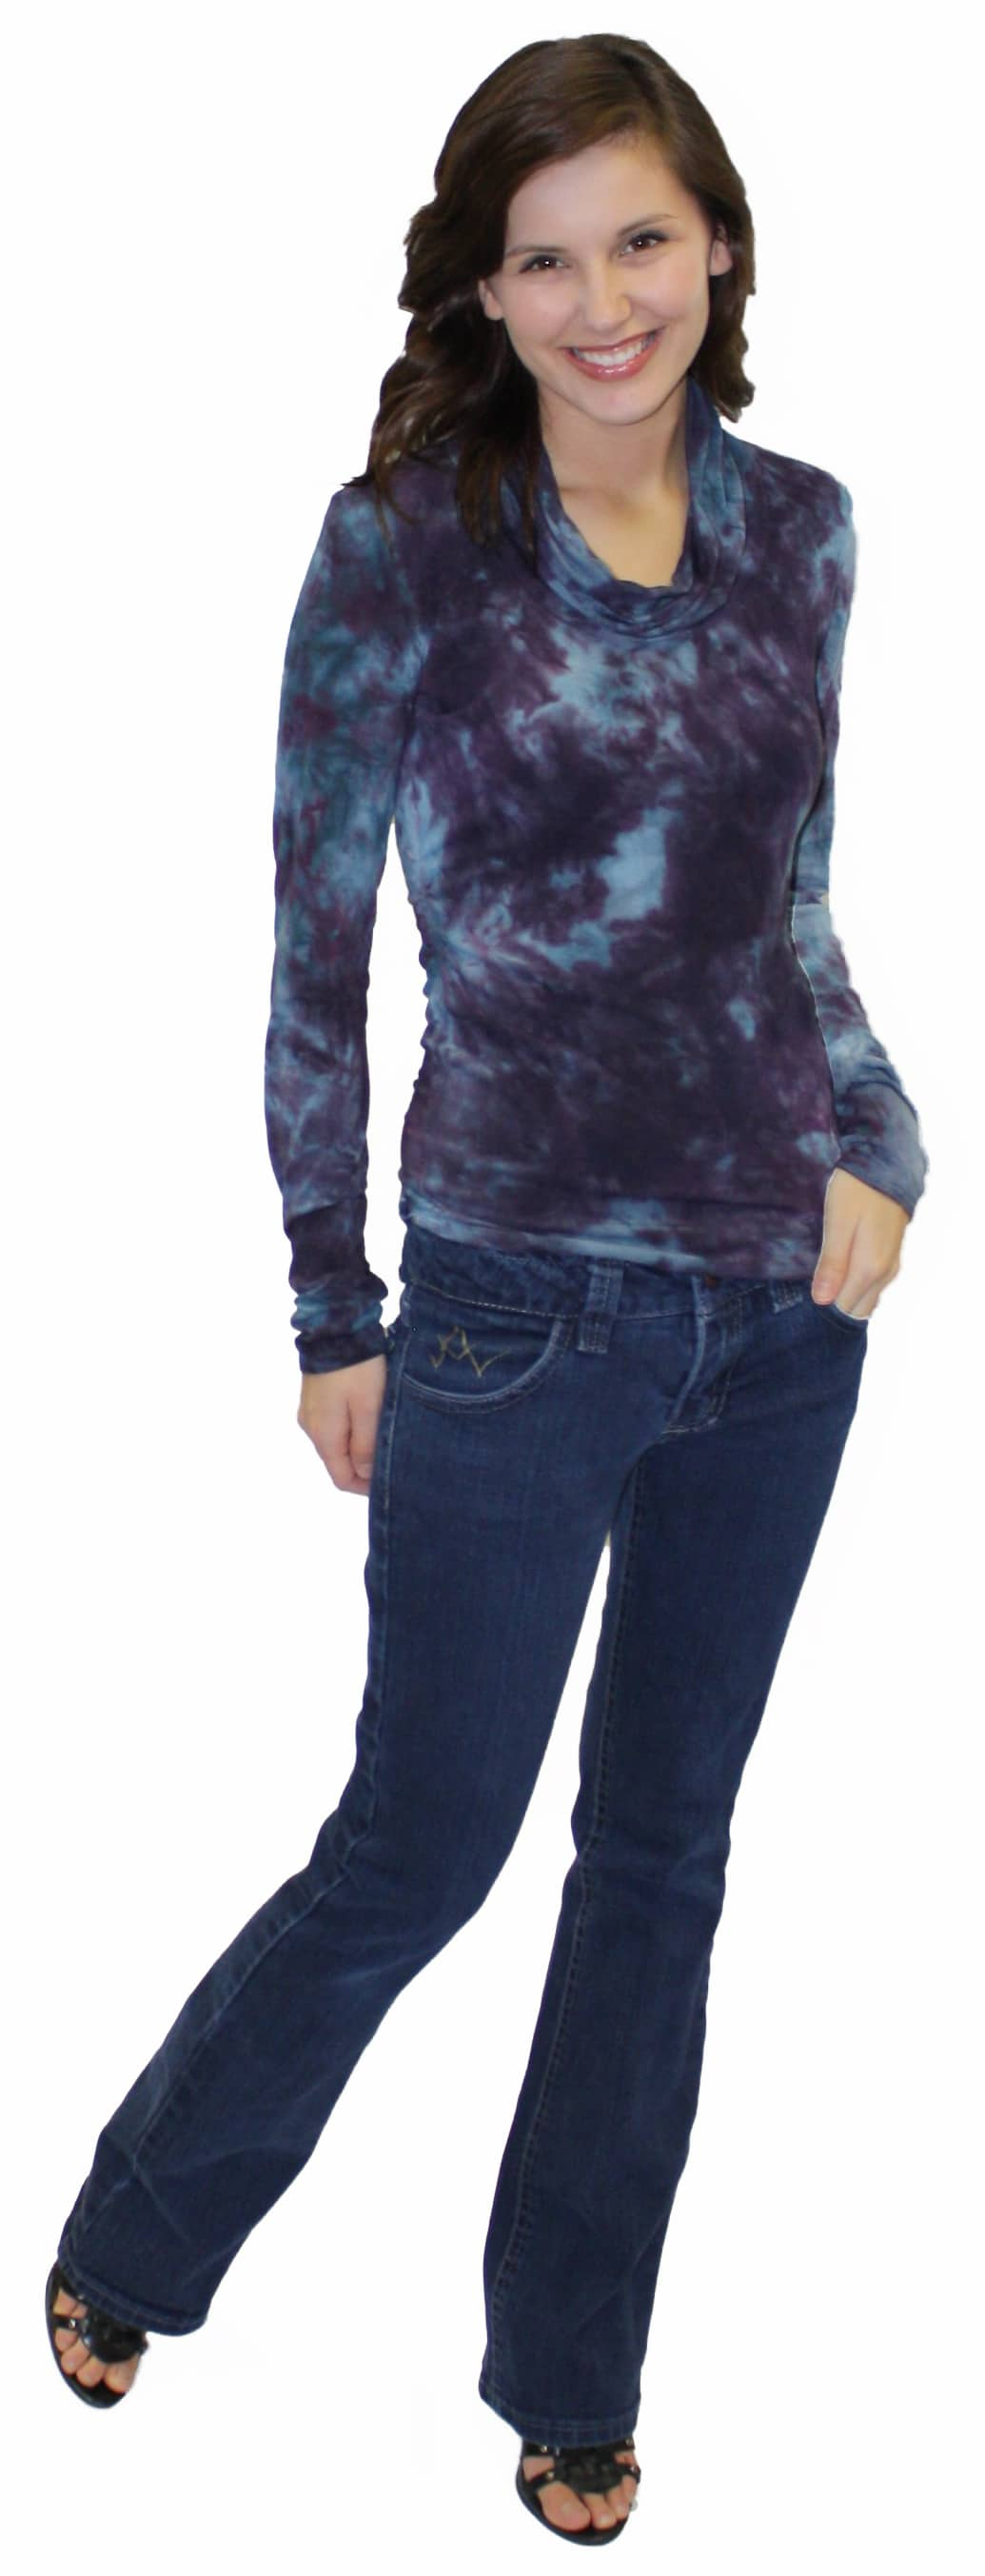 Sewing Pattern Alterations – Fitting a Jean Pattern for a Round Stomach